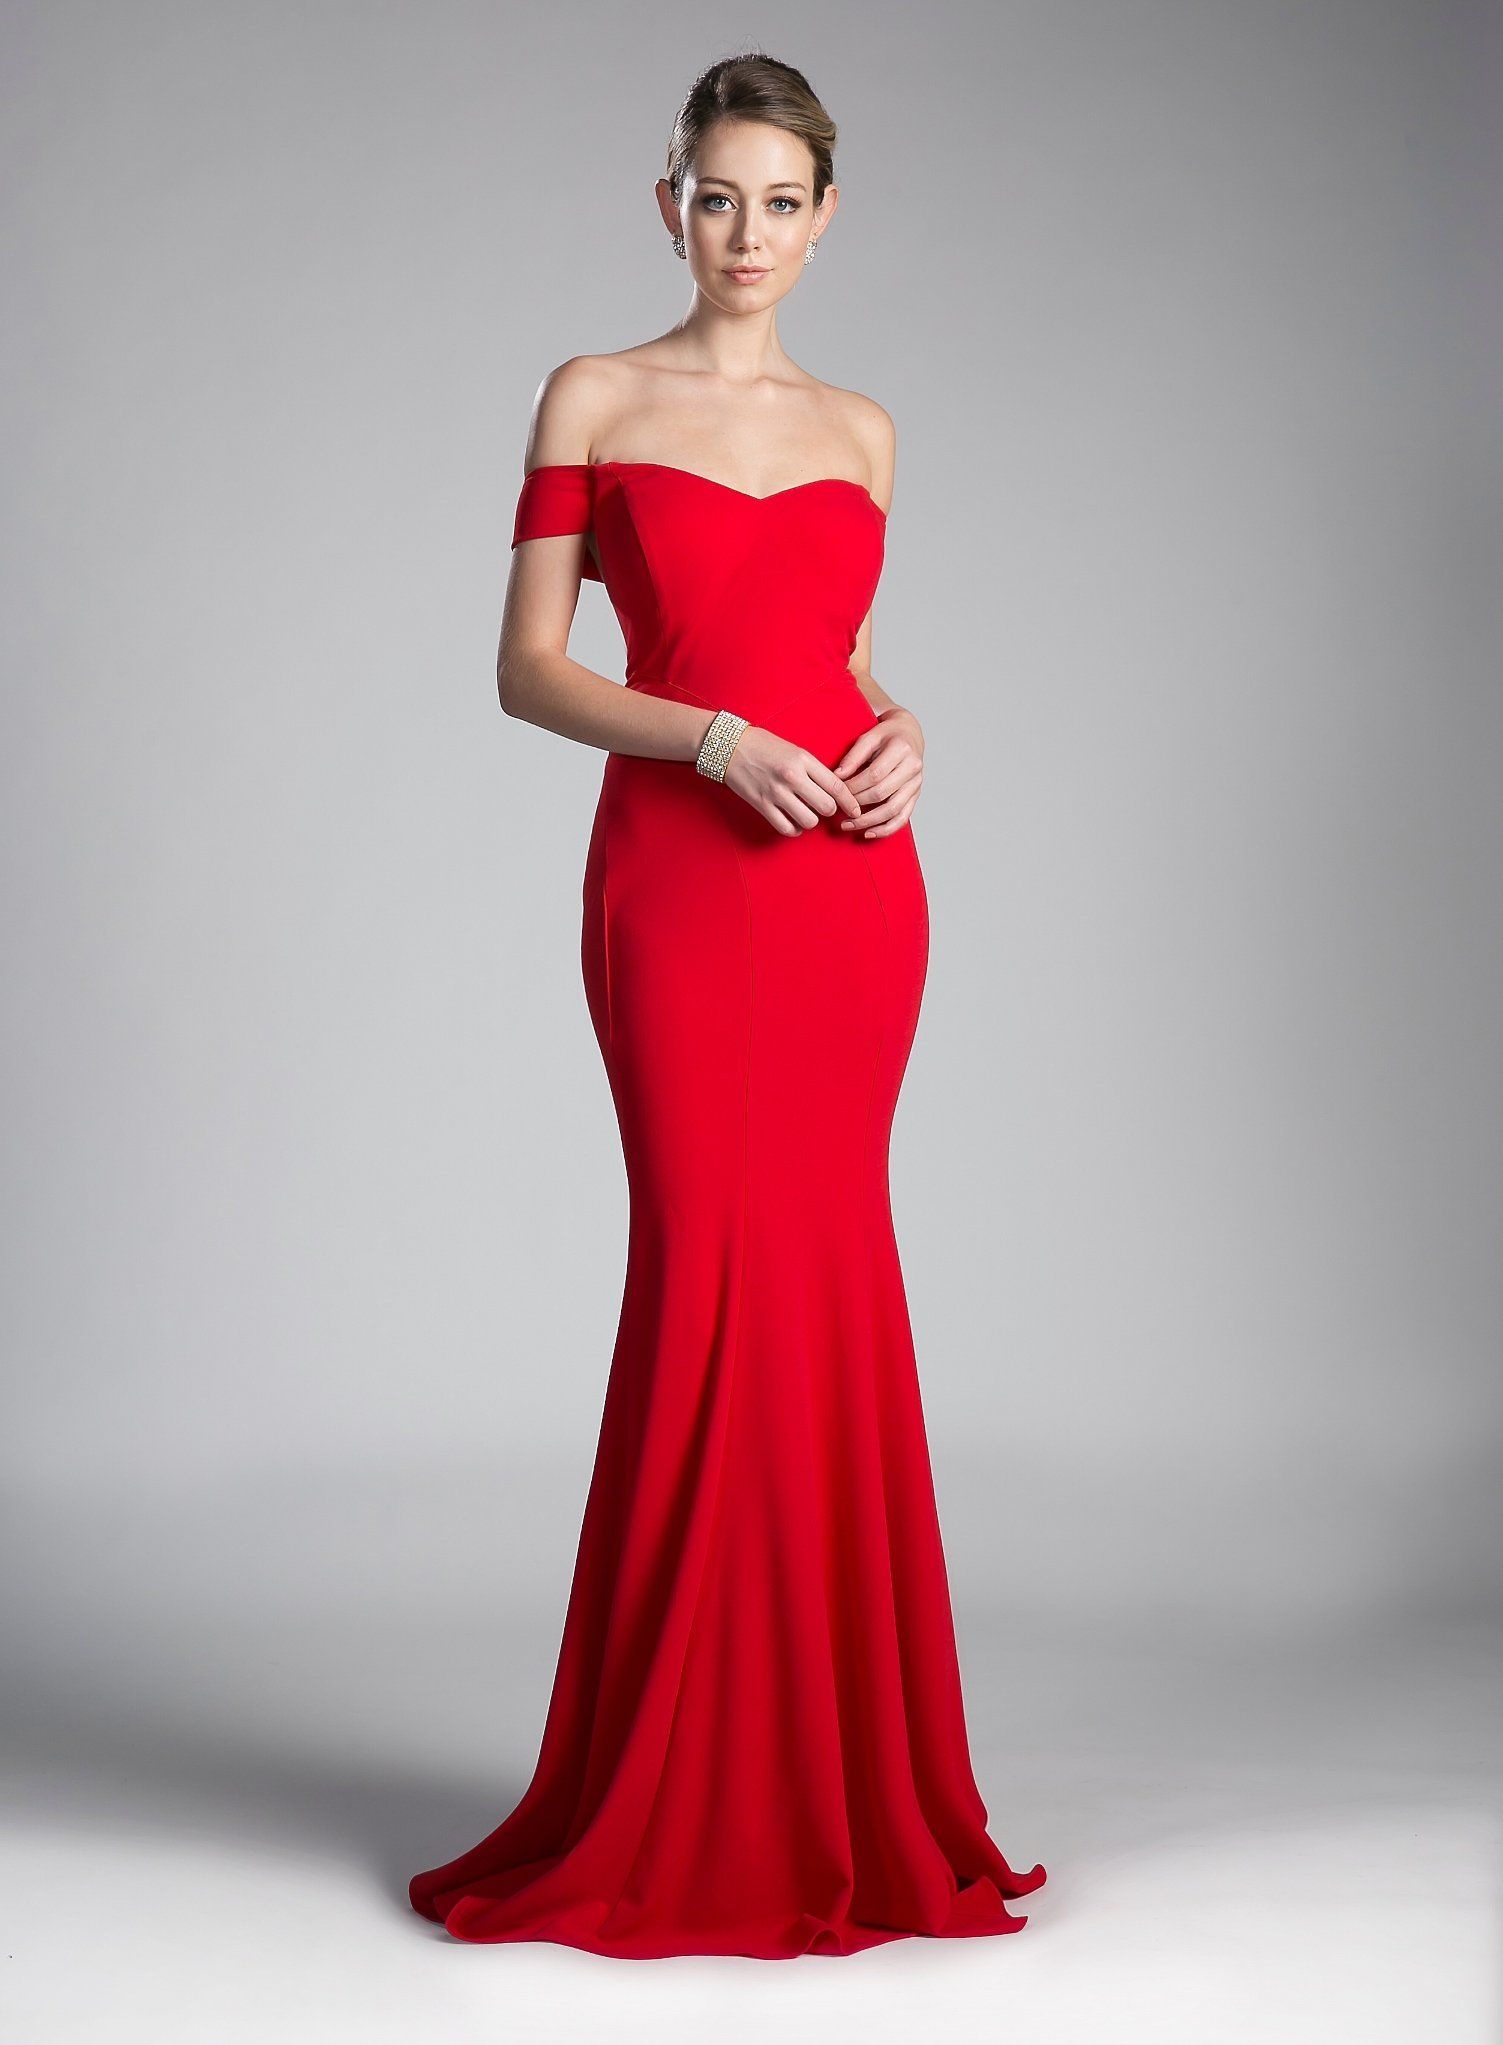 a61bf927d29 Long Off the Shoulder Mermaid Dress by Cinderella Divine CD711 in ...